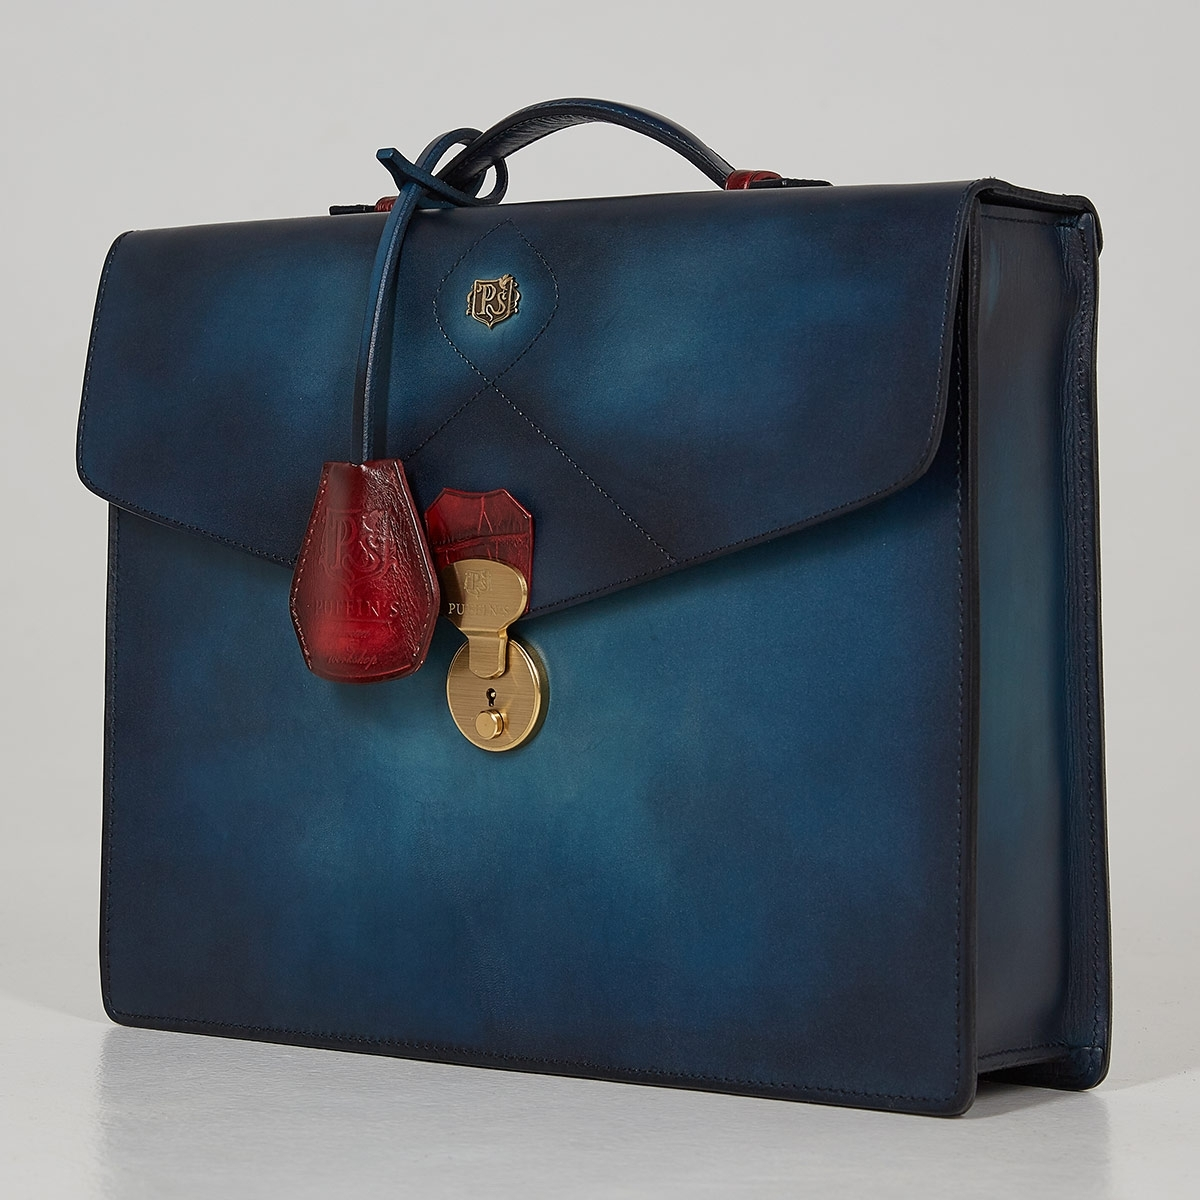 Briefcase ELEGANCE red currant & sapphire blue